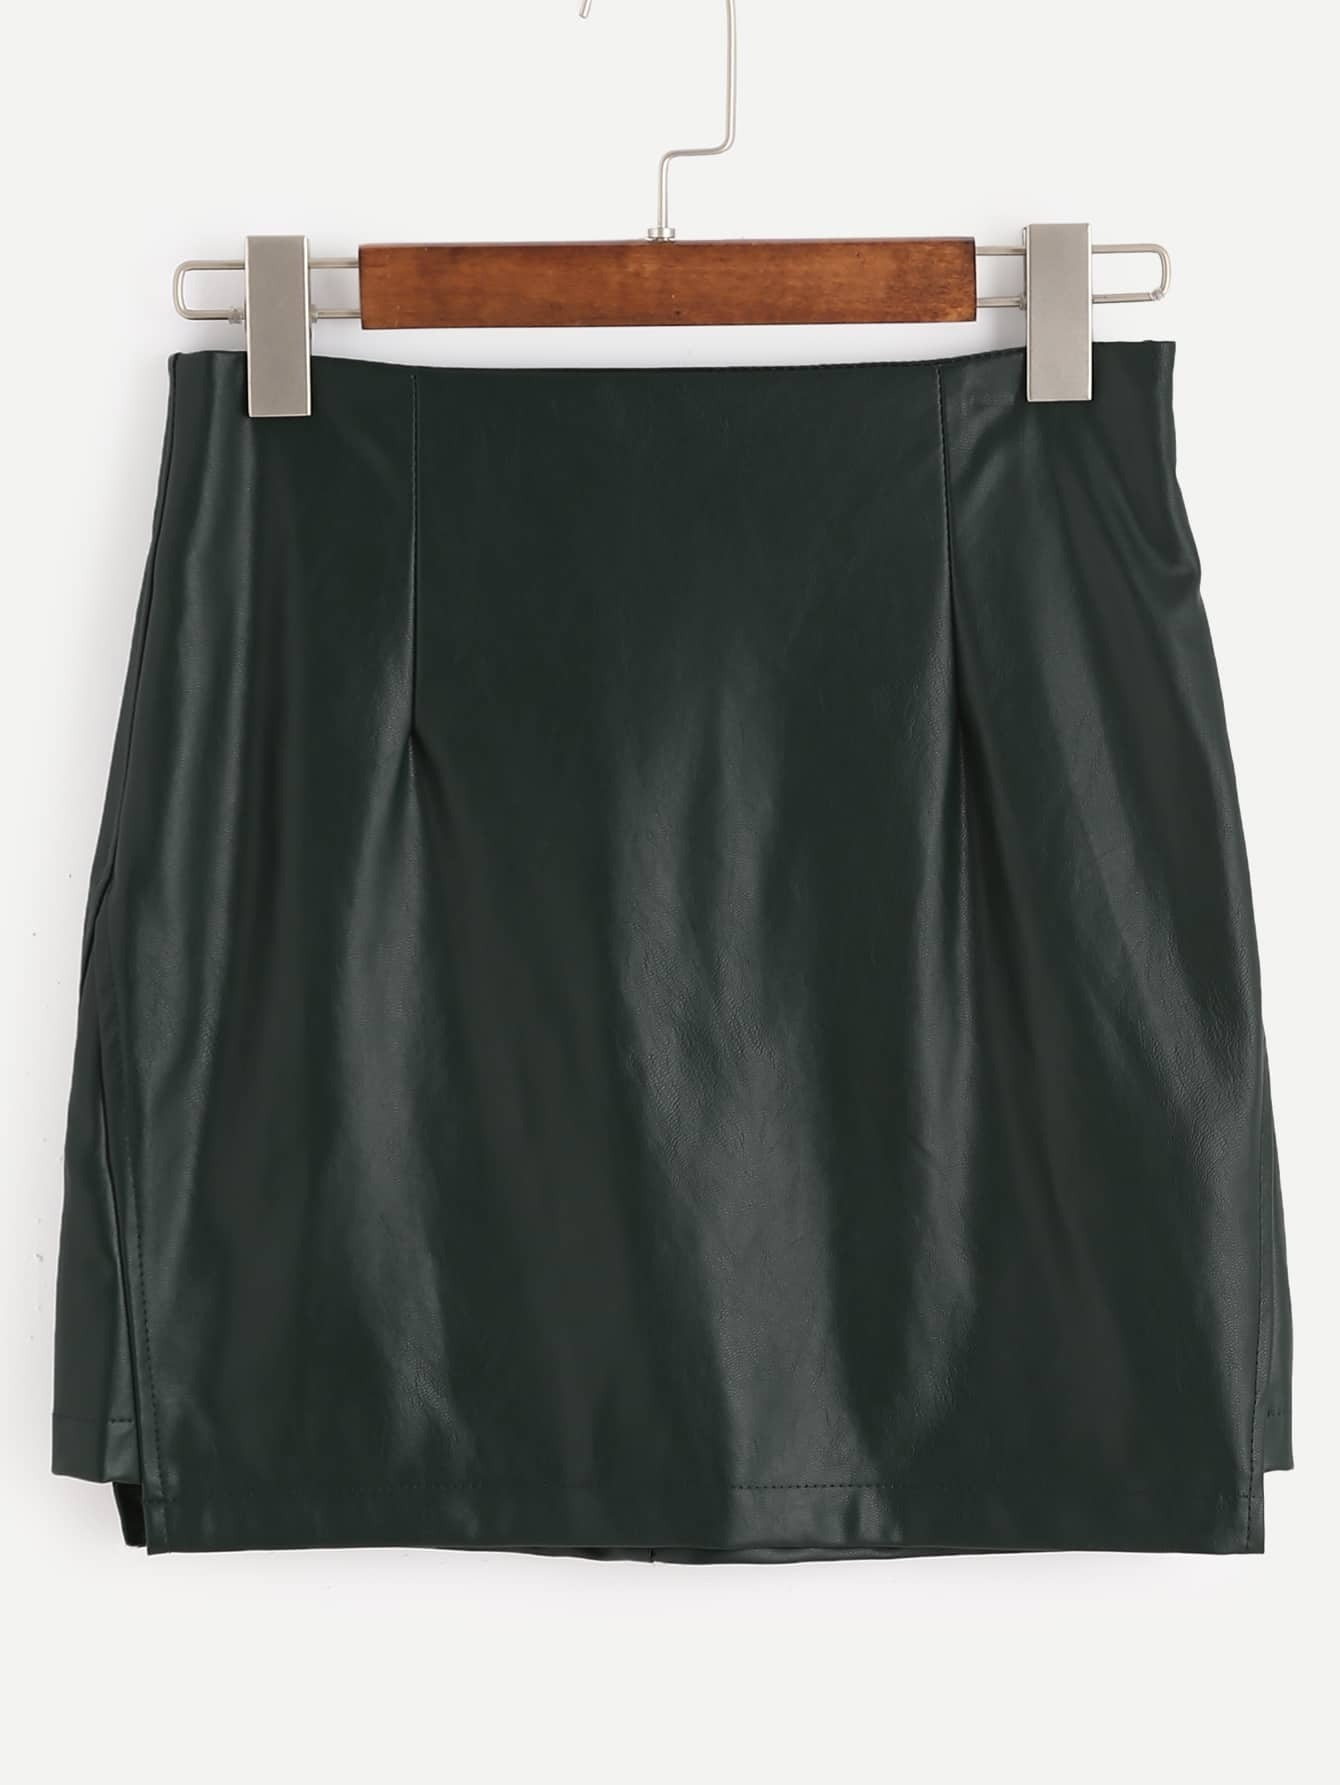 green faux leather skirt with zipperfor romwe